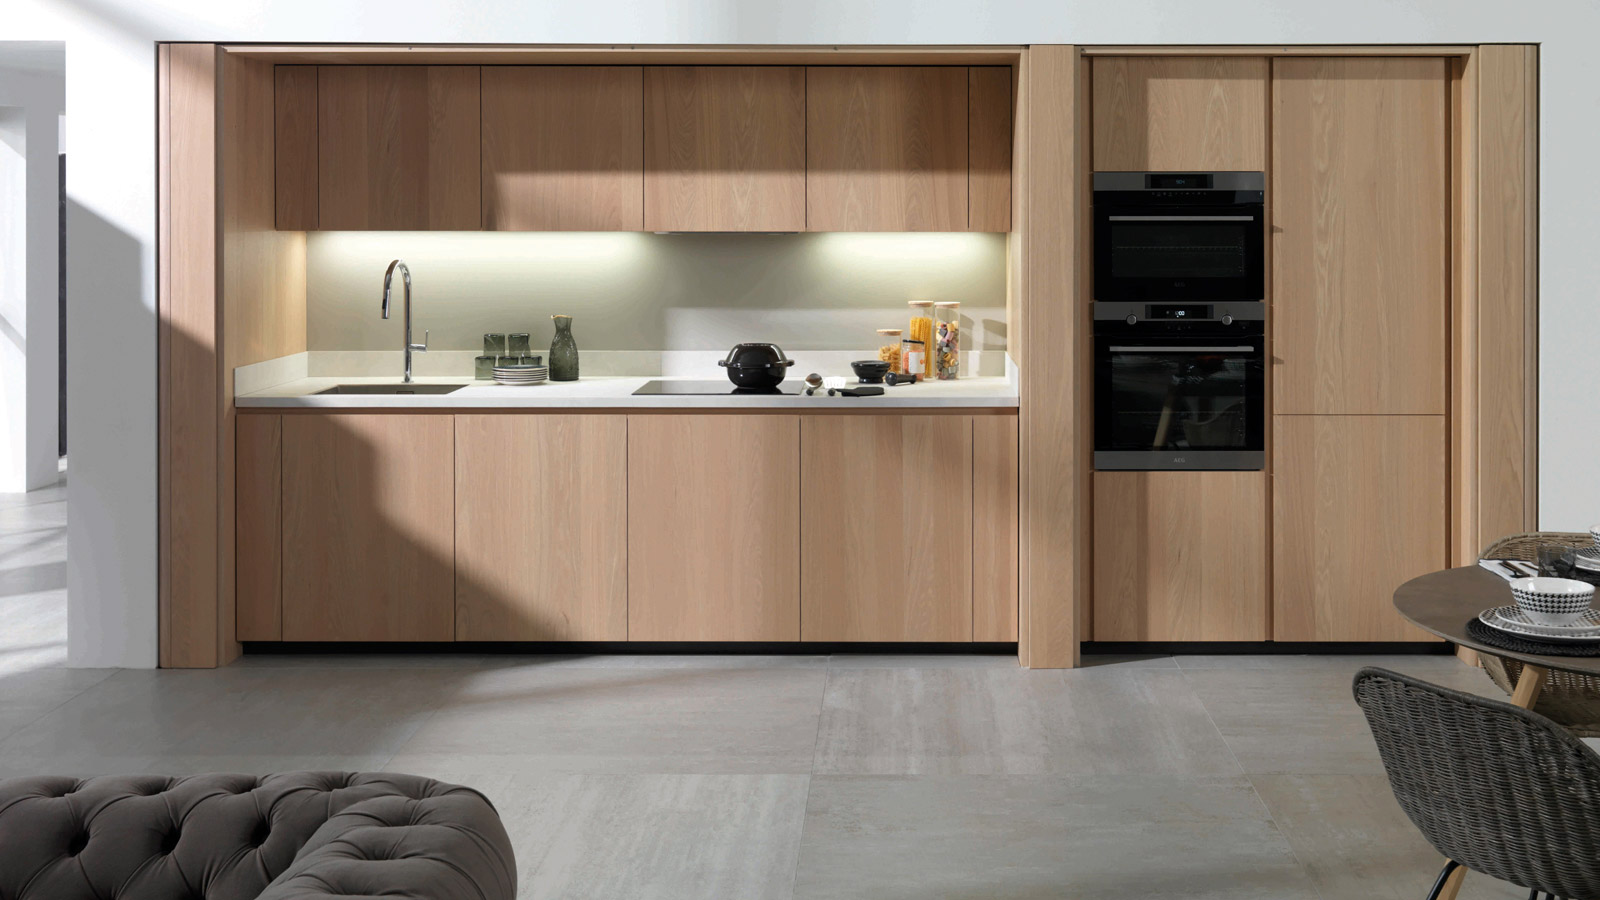 Cersaie 2019: Oak plays the leading role in the new kitchens and bathrooms from Gamadecor